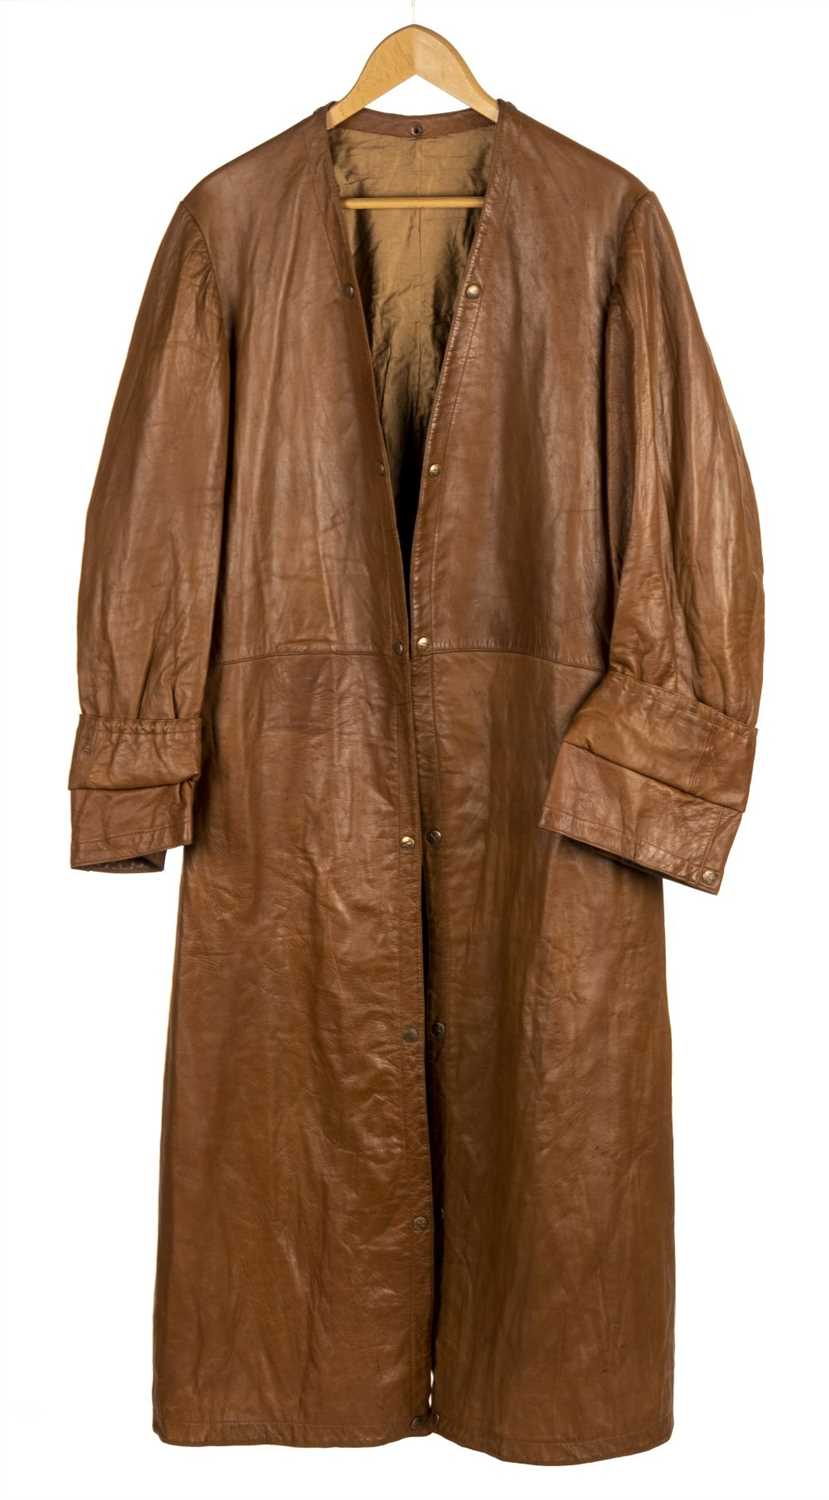 Lot 34 - Brackley (Herbert, 1894-1948). An Interwar leather flying coat worn by Air Commodore Brackley